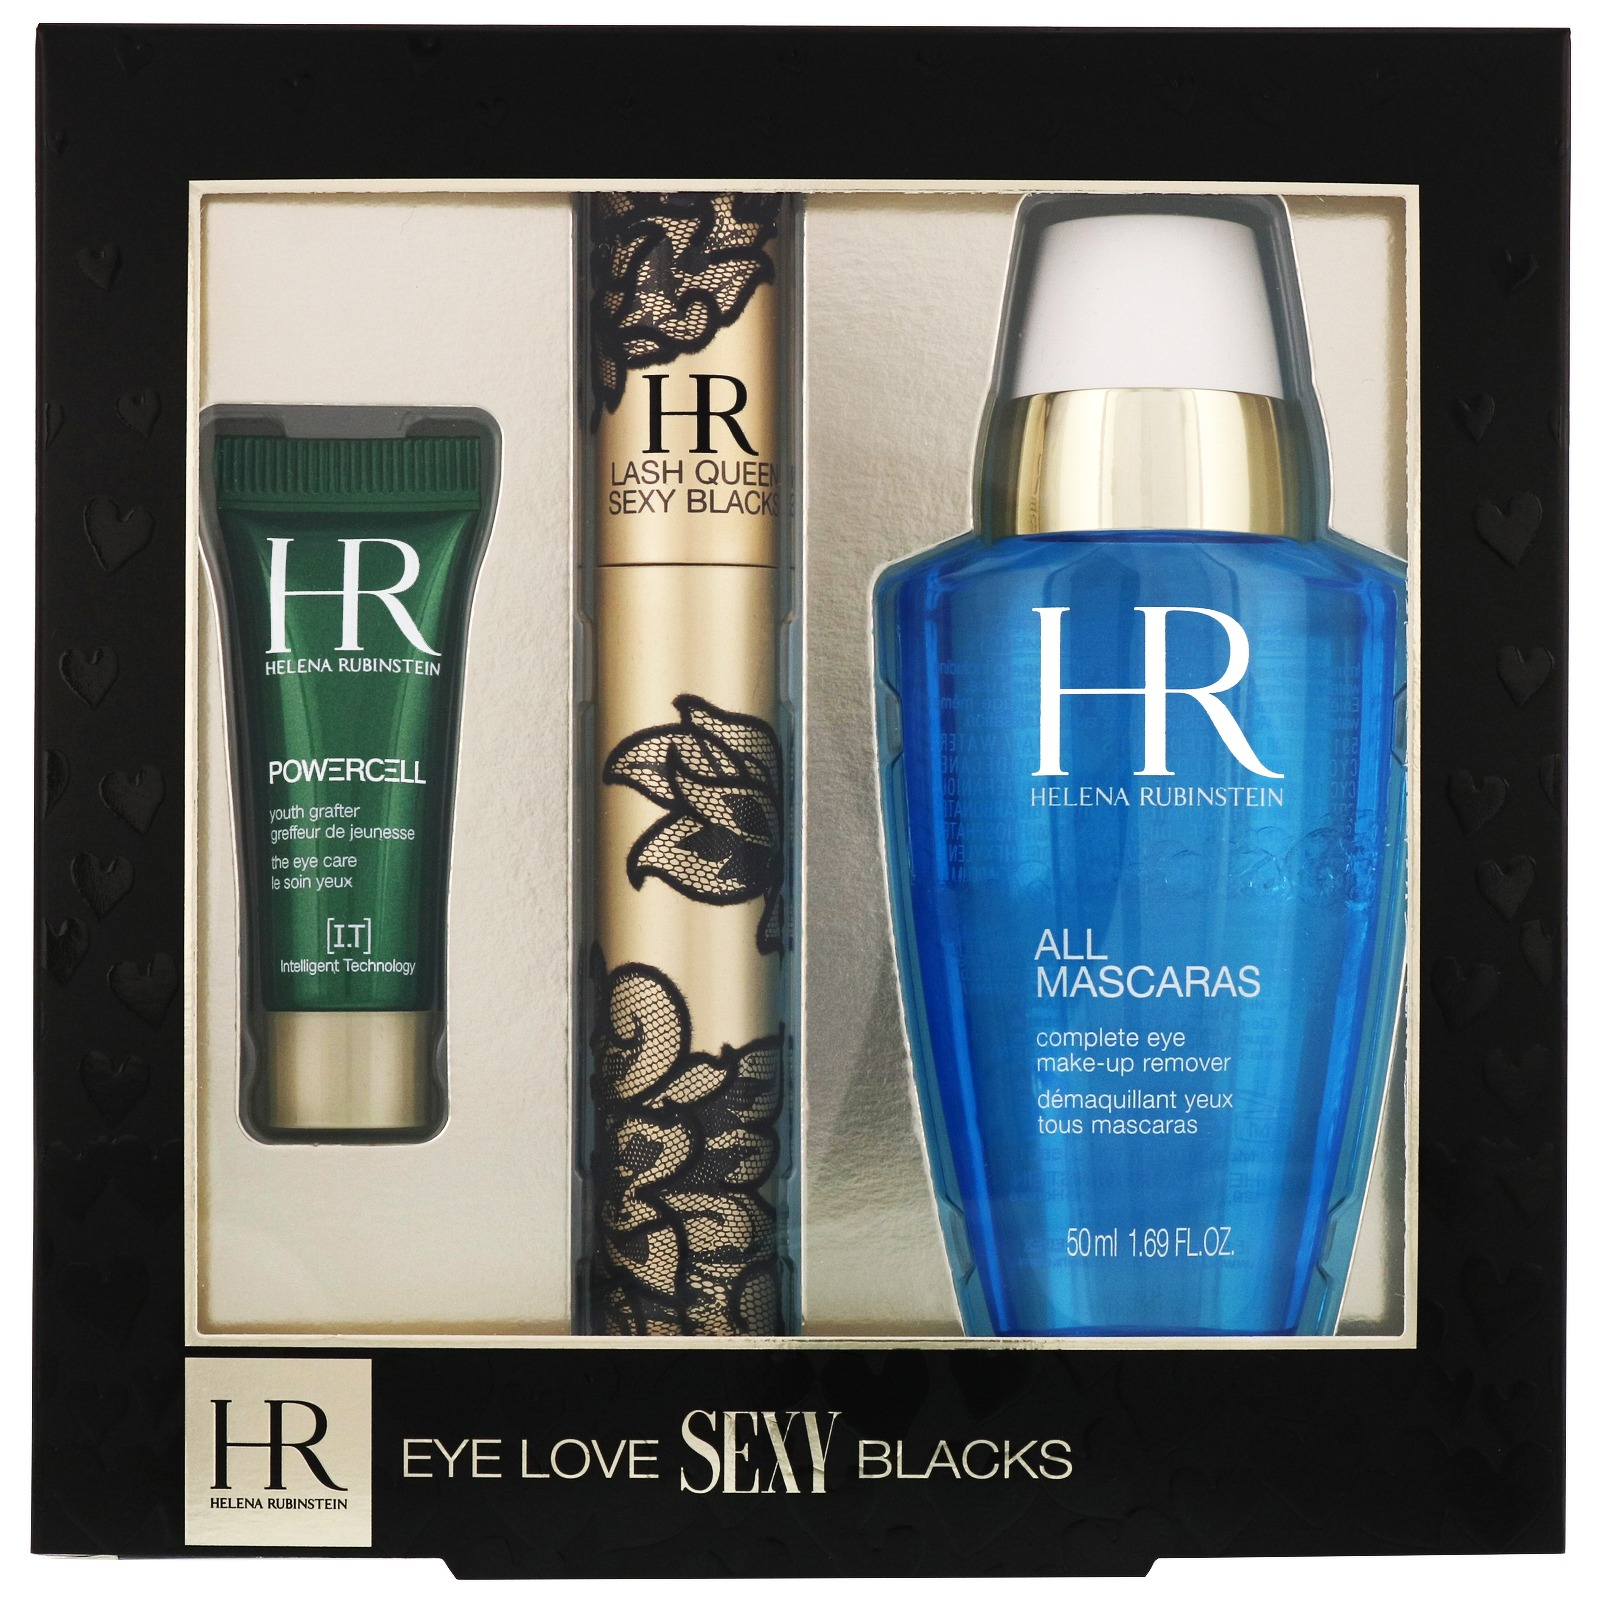 Helena Rubinstein Sets Eye Love Sexy Blacks